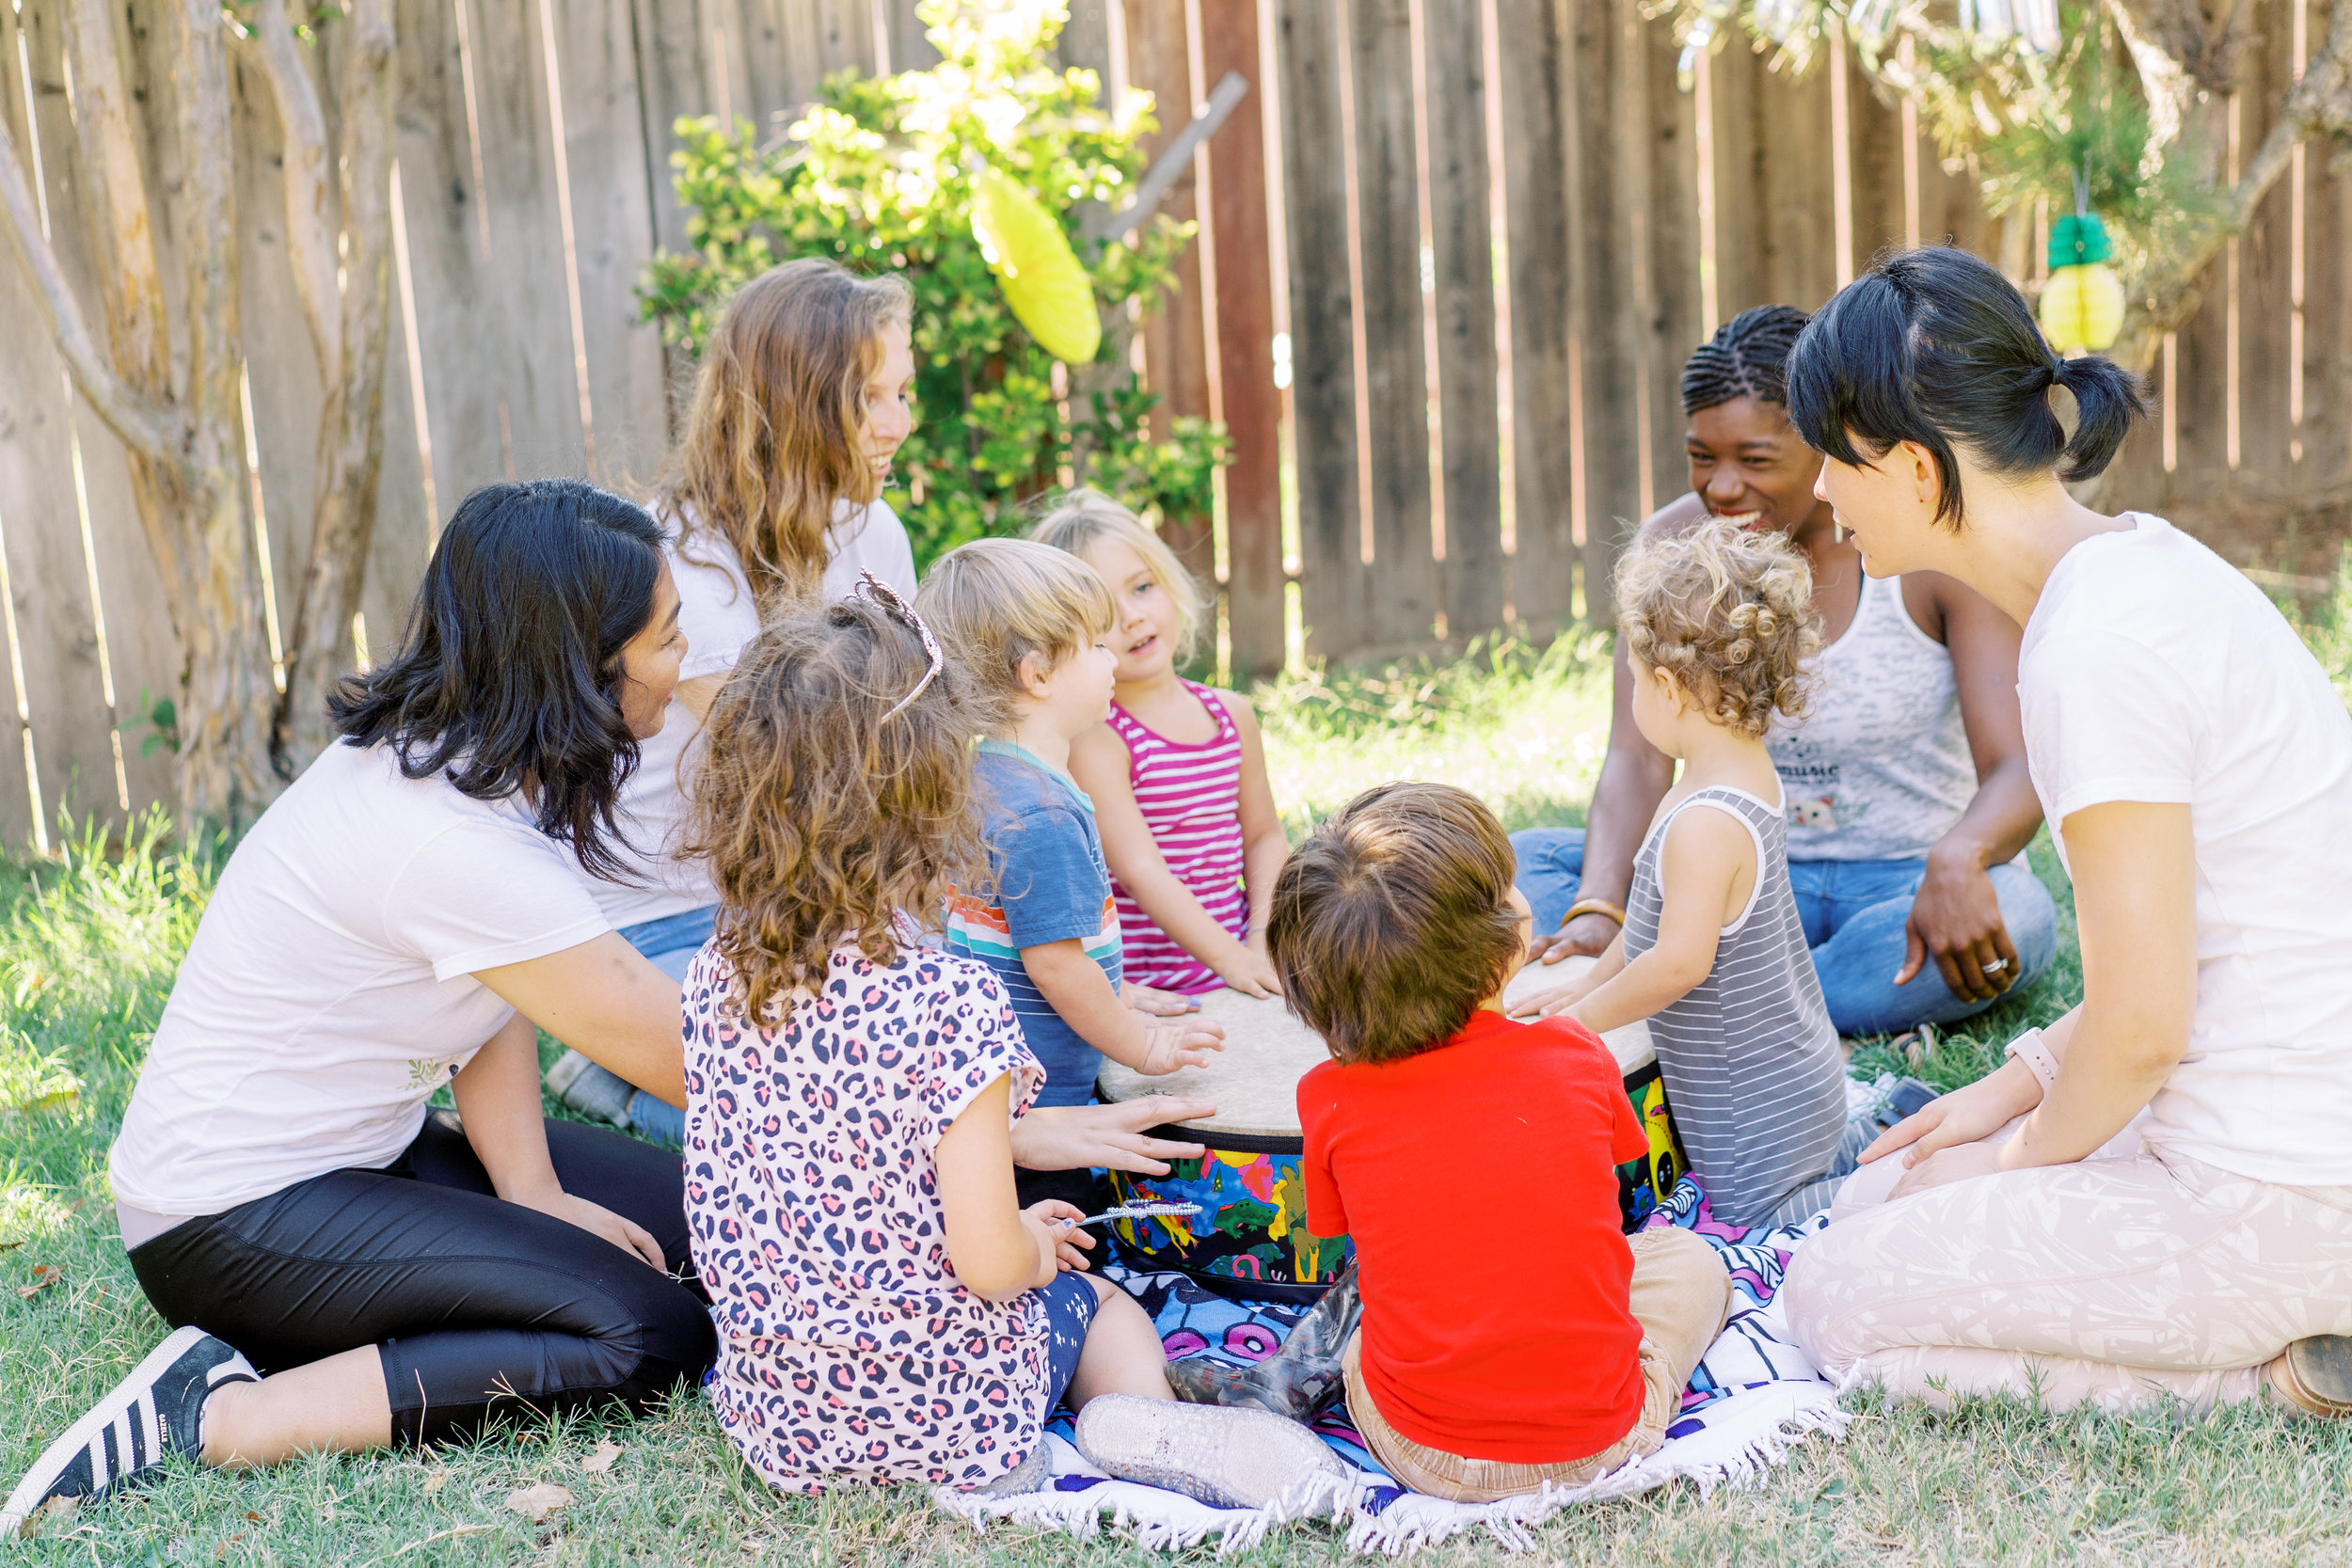 Our Practice - The curriculum is pre-designed but is adaptable for the unique environment and culture of your childcare program.